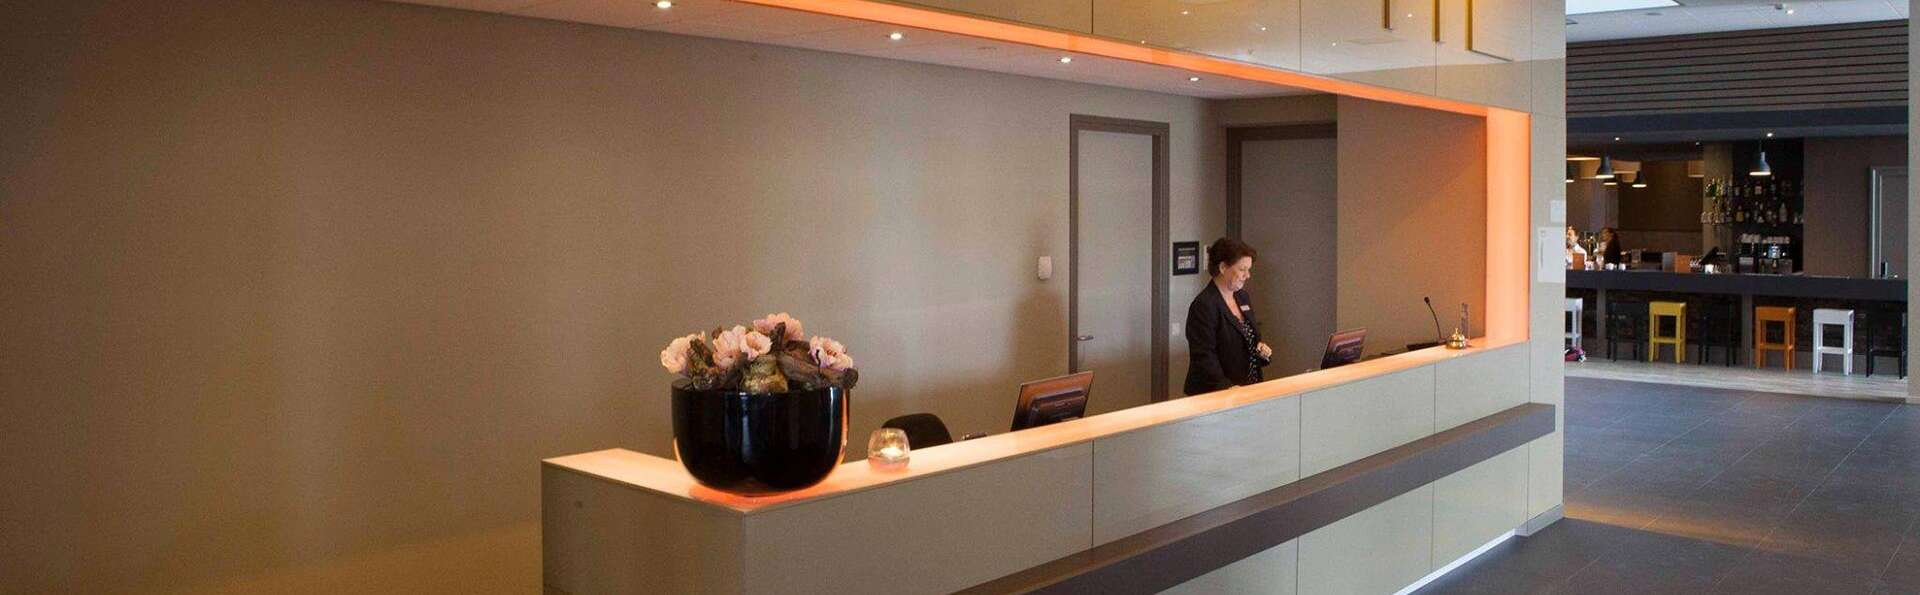 Fletcher Wellness-Hotel Helmond  - edit_reception.jpg